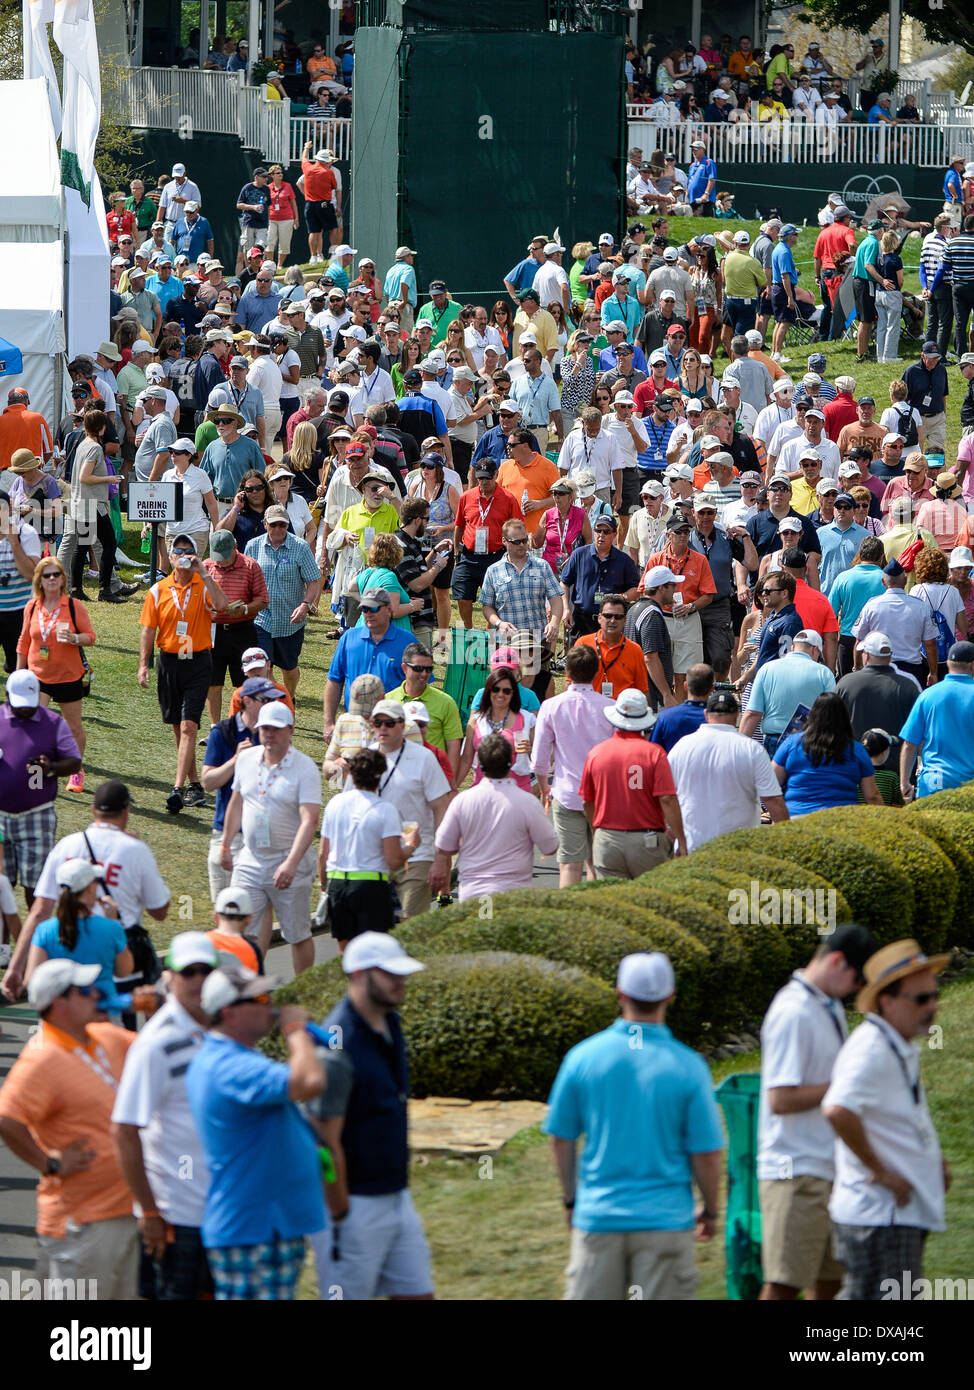 Orlando Florida Usa 21st March 2014 Crowds At Bay Hill During